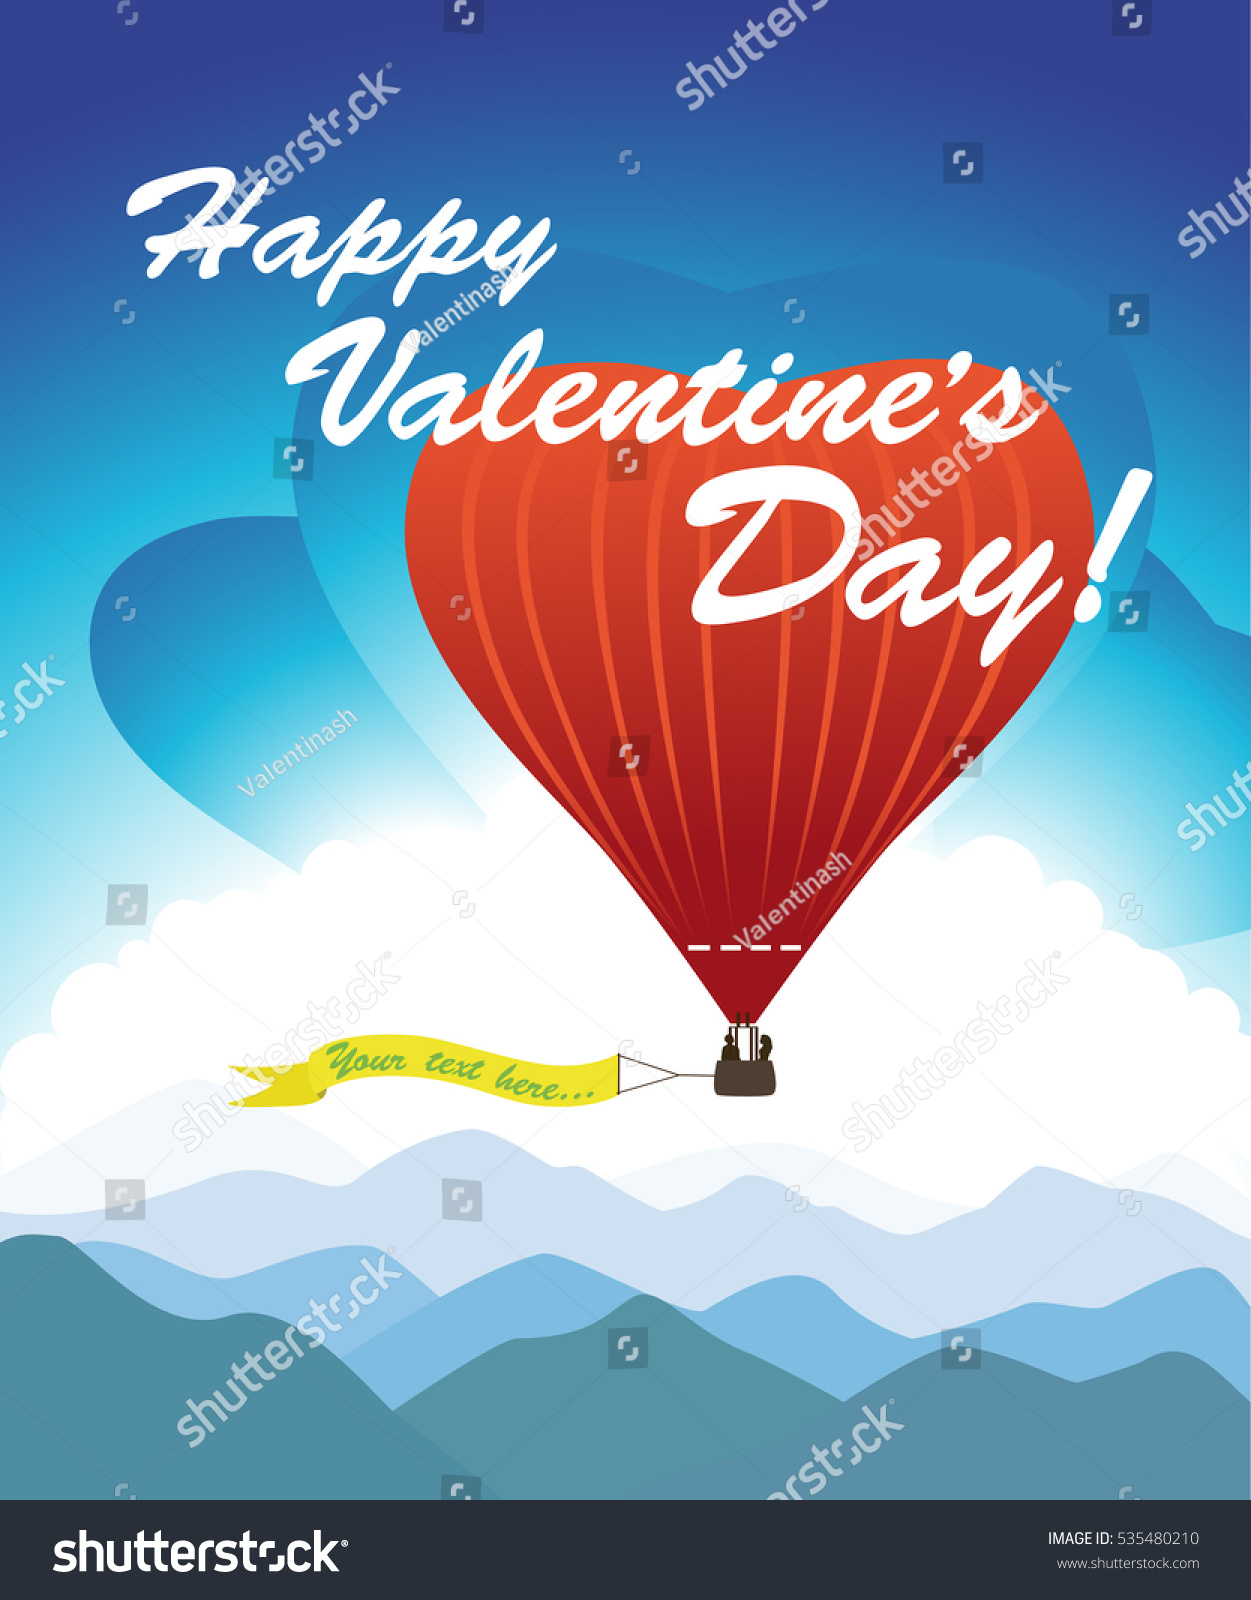 Greeting Card Valentines Day Romantic Hot Stock Vector 2018